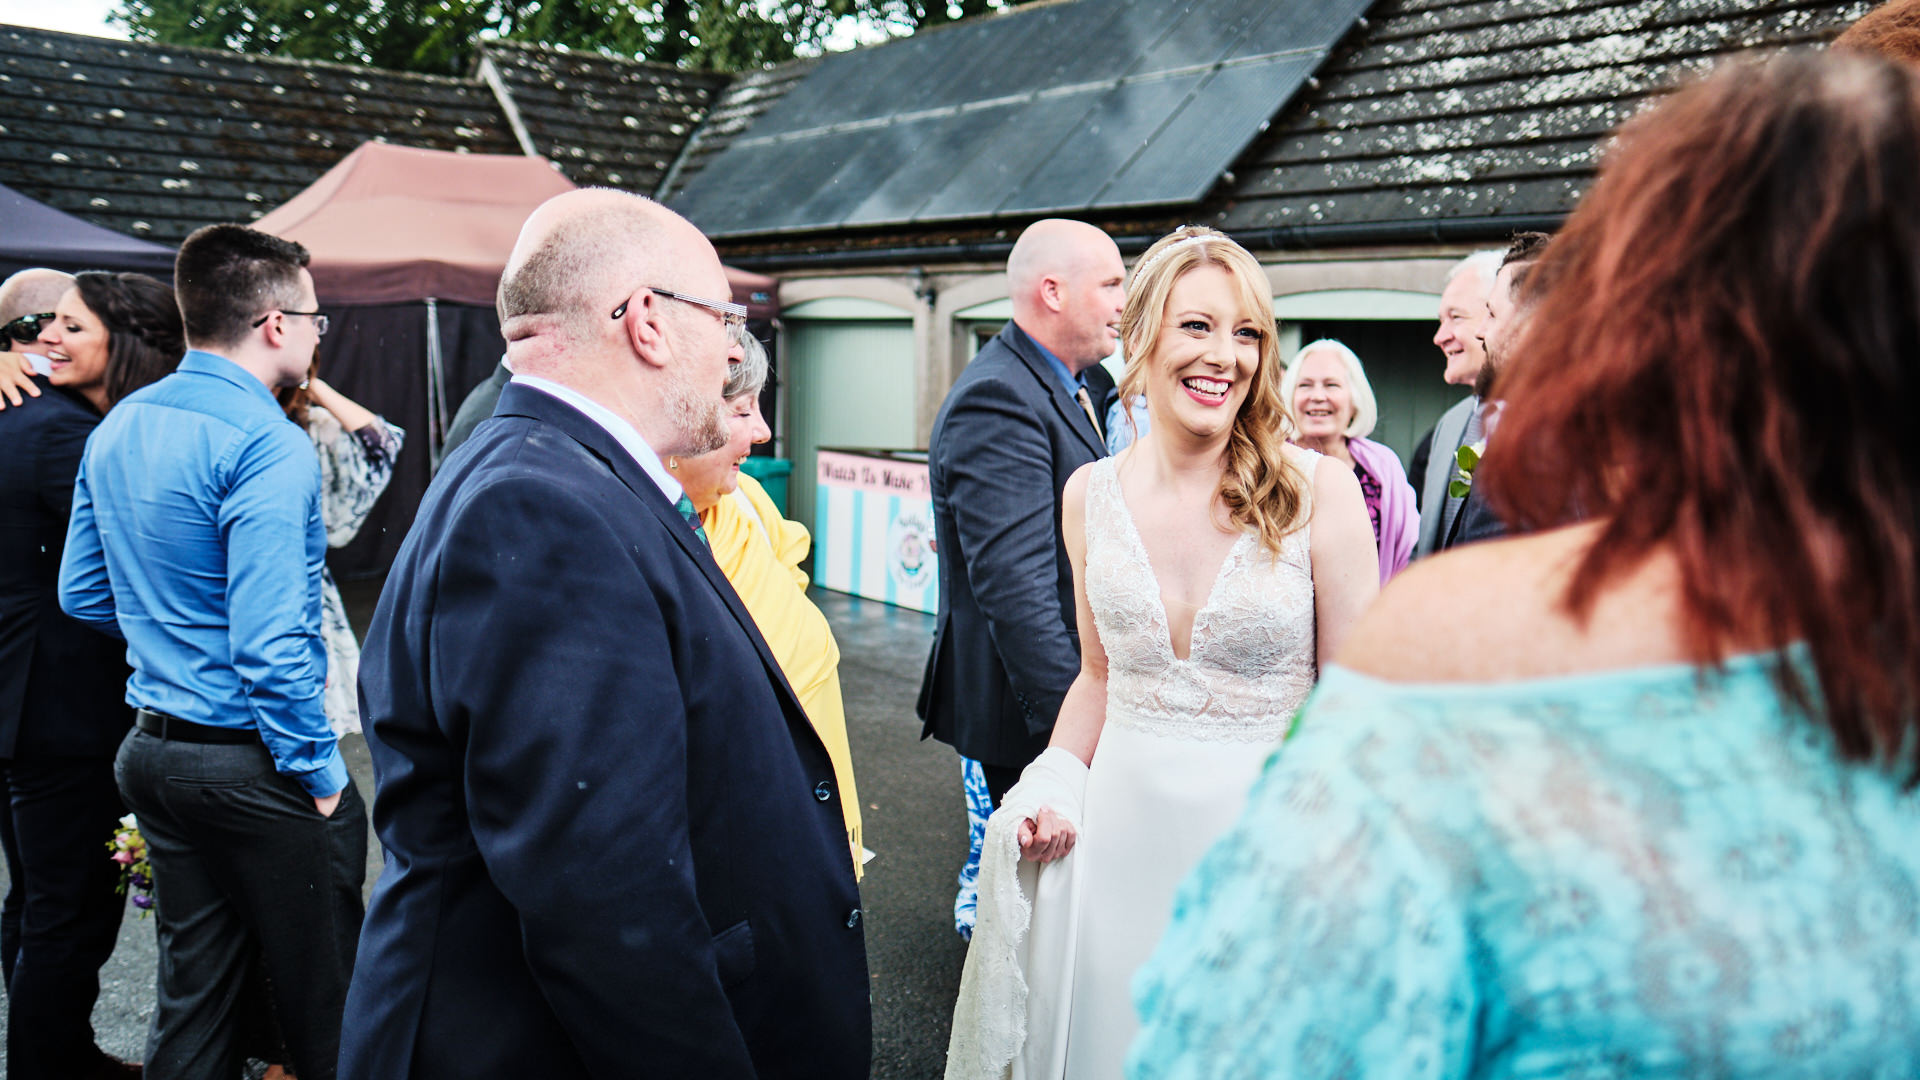 colour photograph of a smiling bride talking to her wedding guests